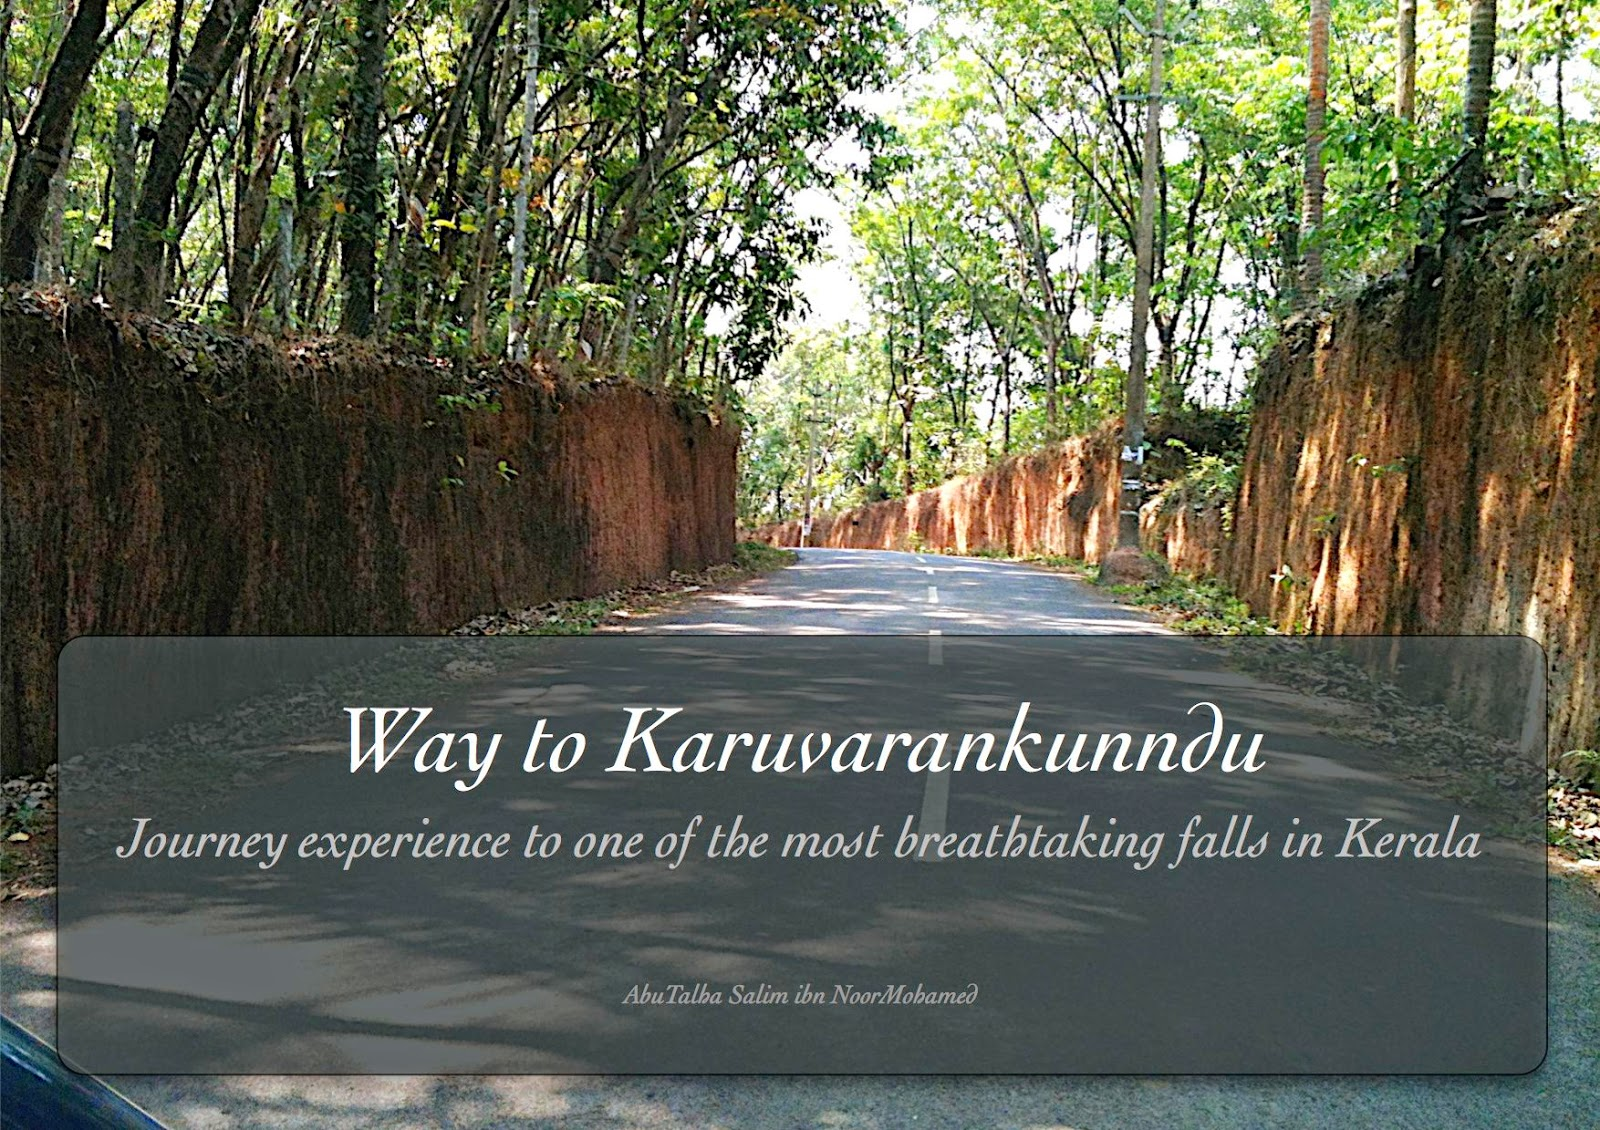 Way to Karuvarankunndu